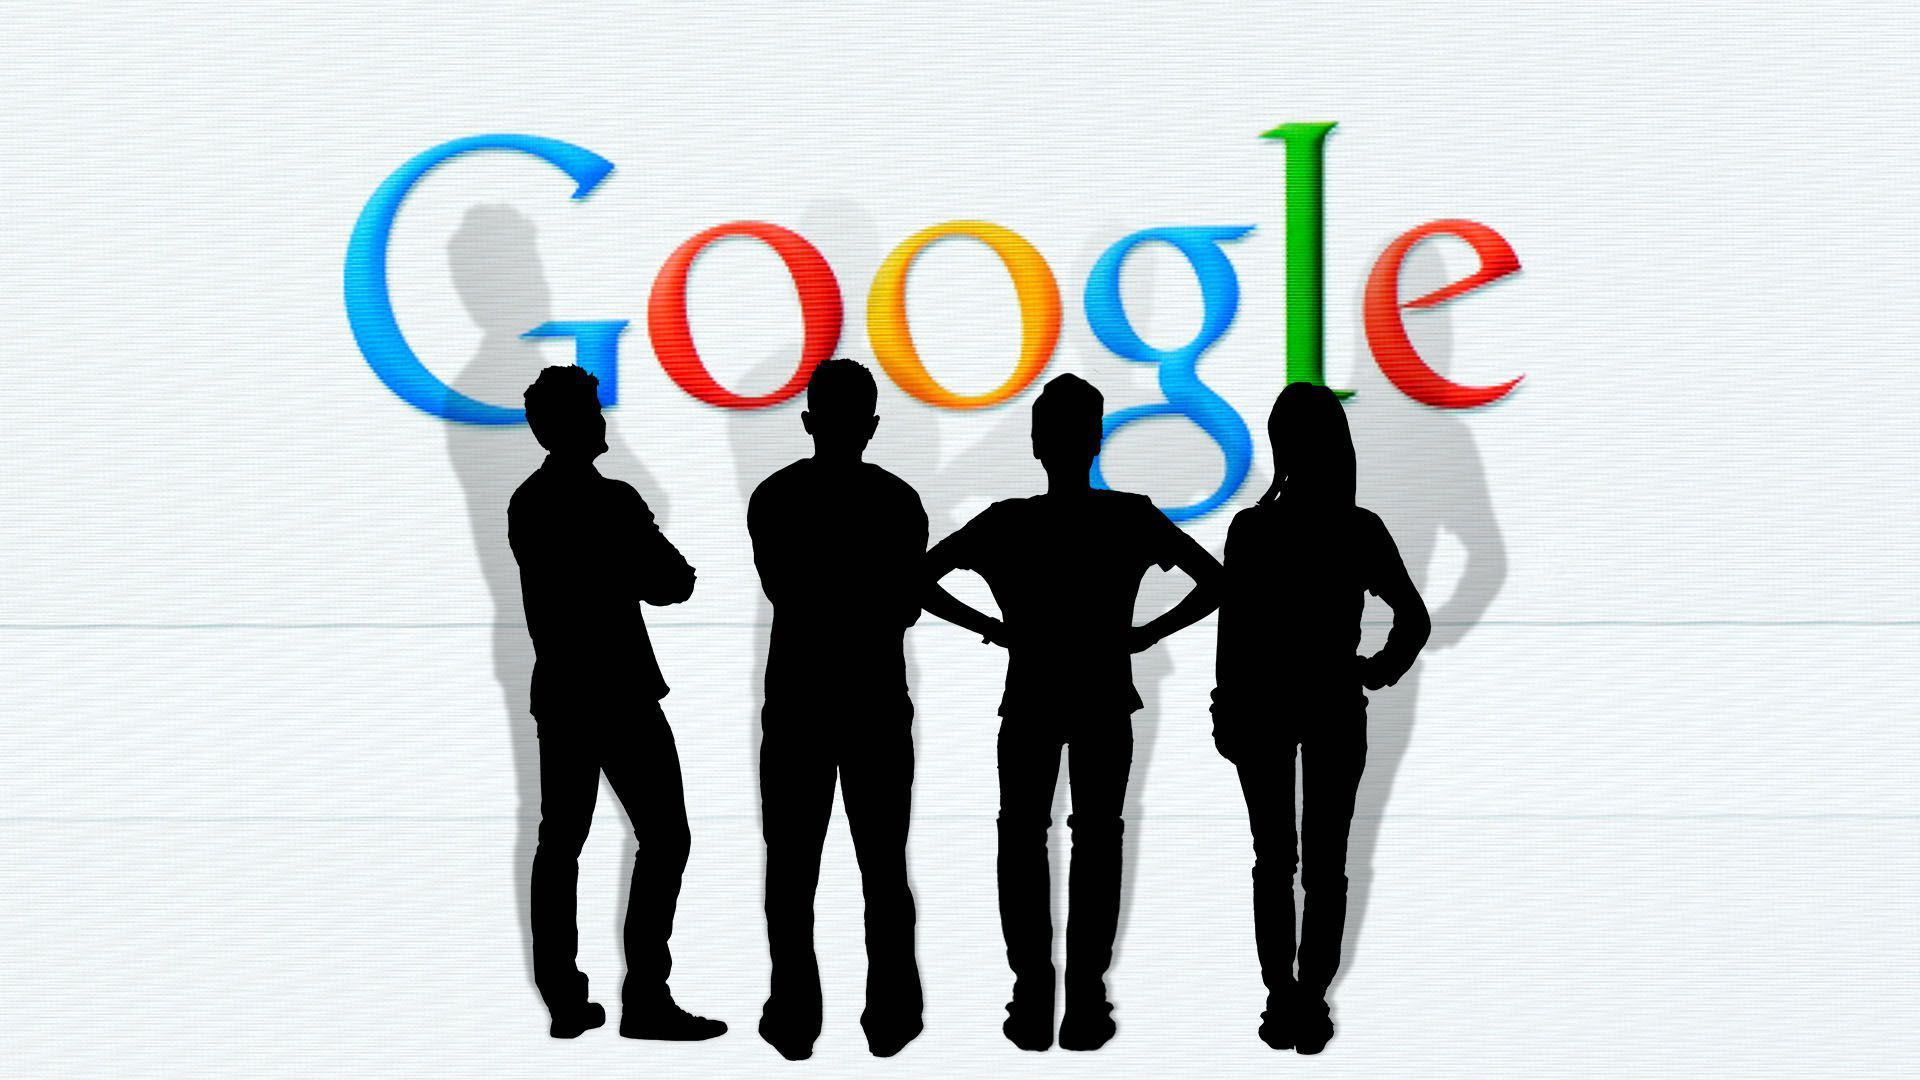 An illustration of darkened silhouettes in front of the Google logo.